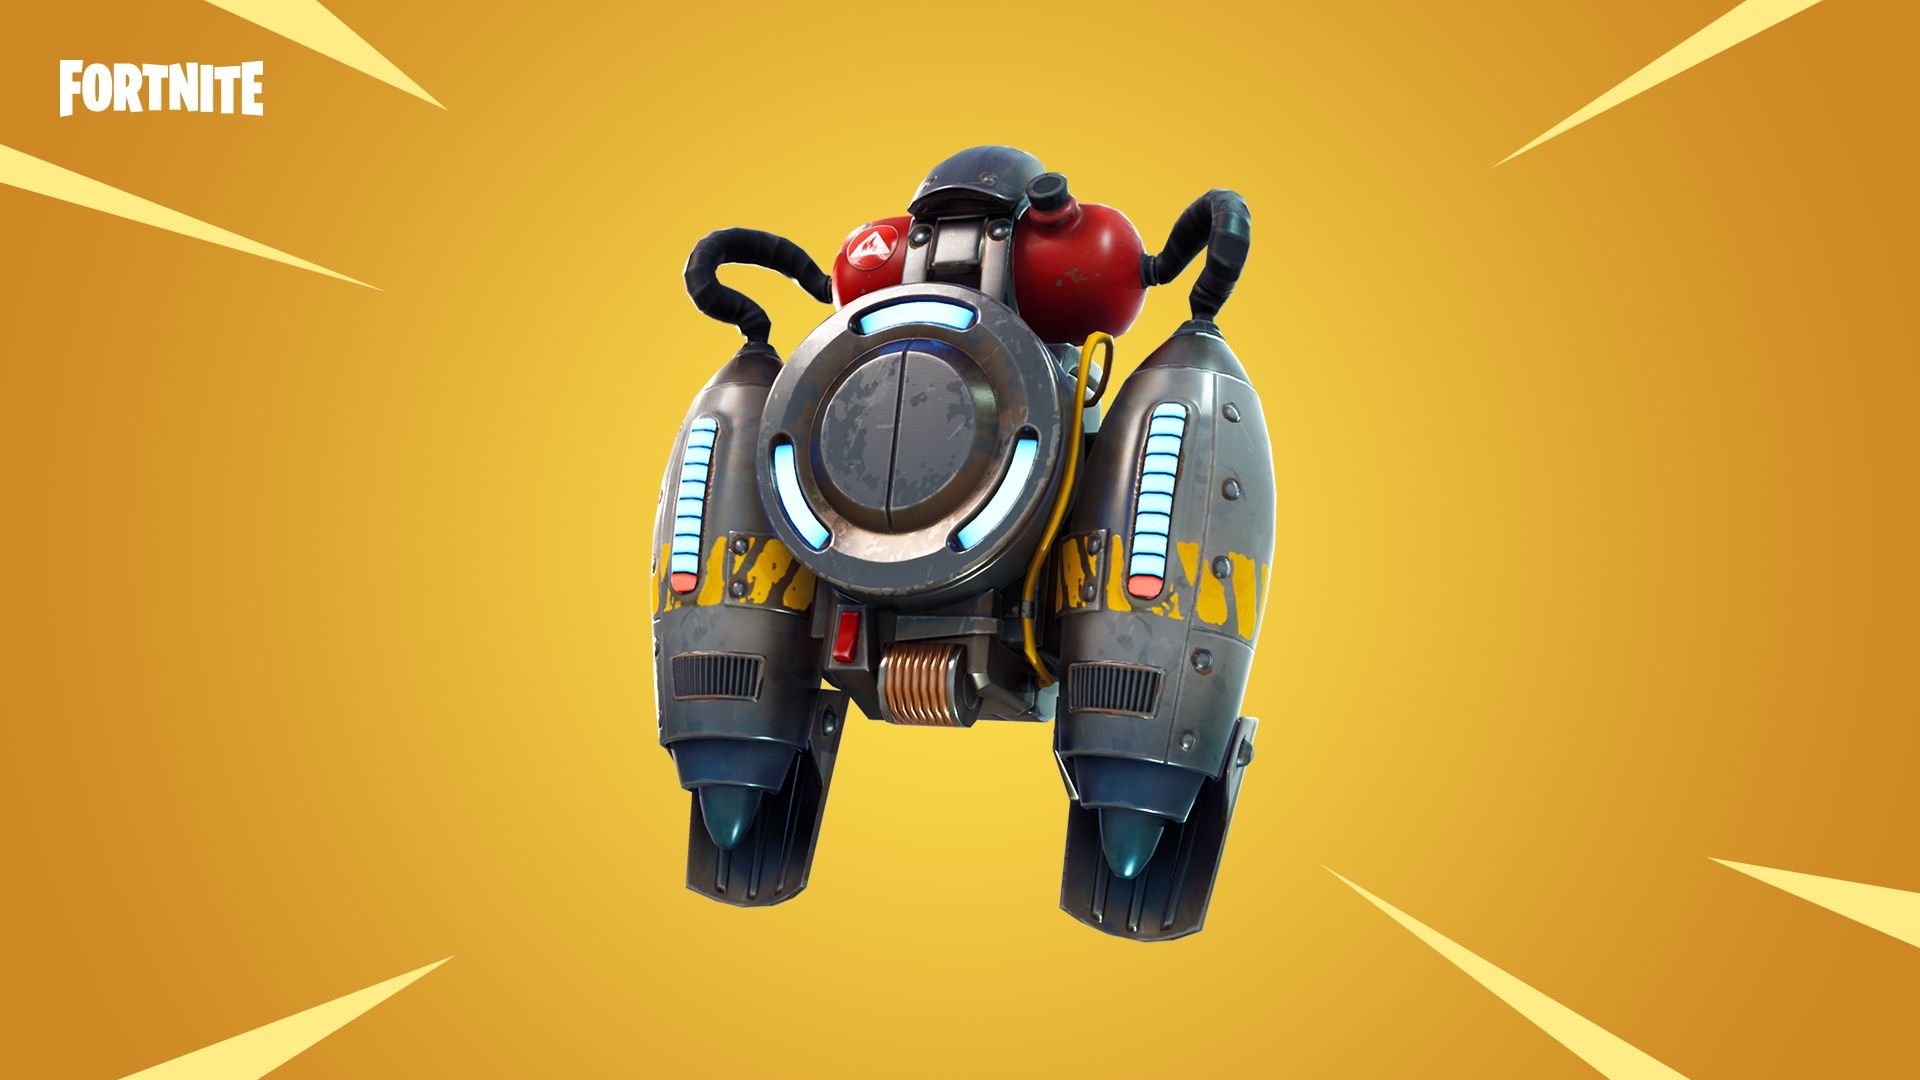 fortnite patch notes - photo #41